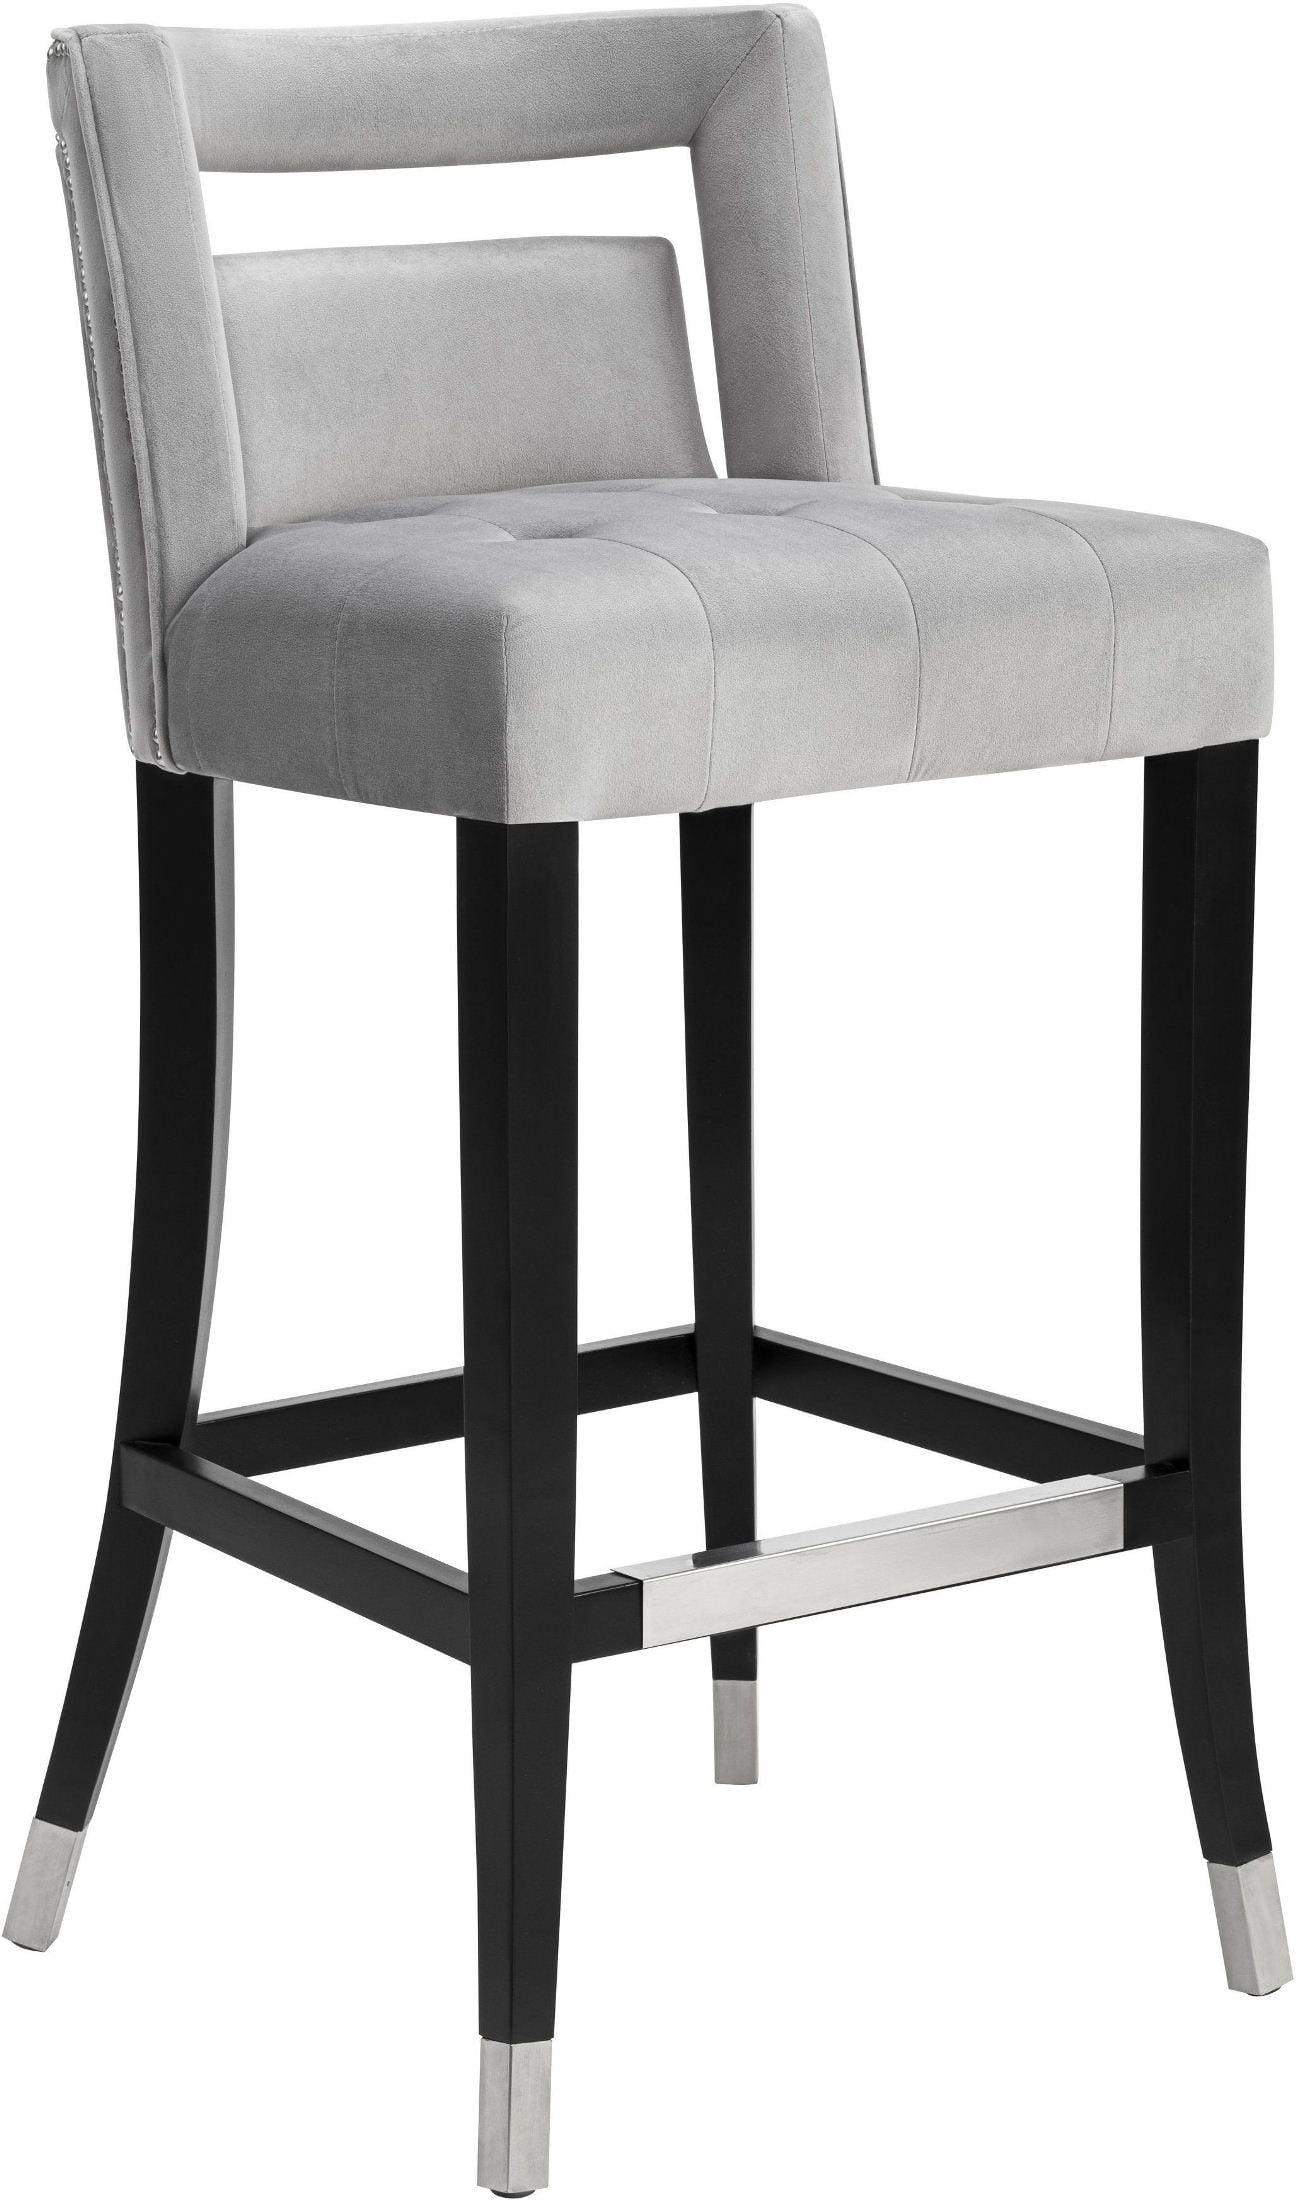 Hart Grey Velvet Counter Stool From Tov Coleman Furniture